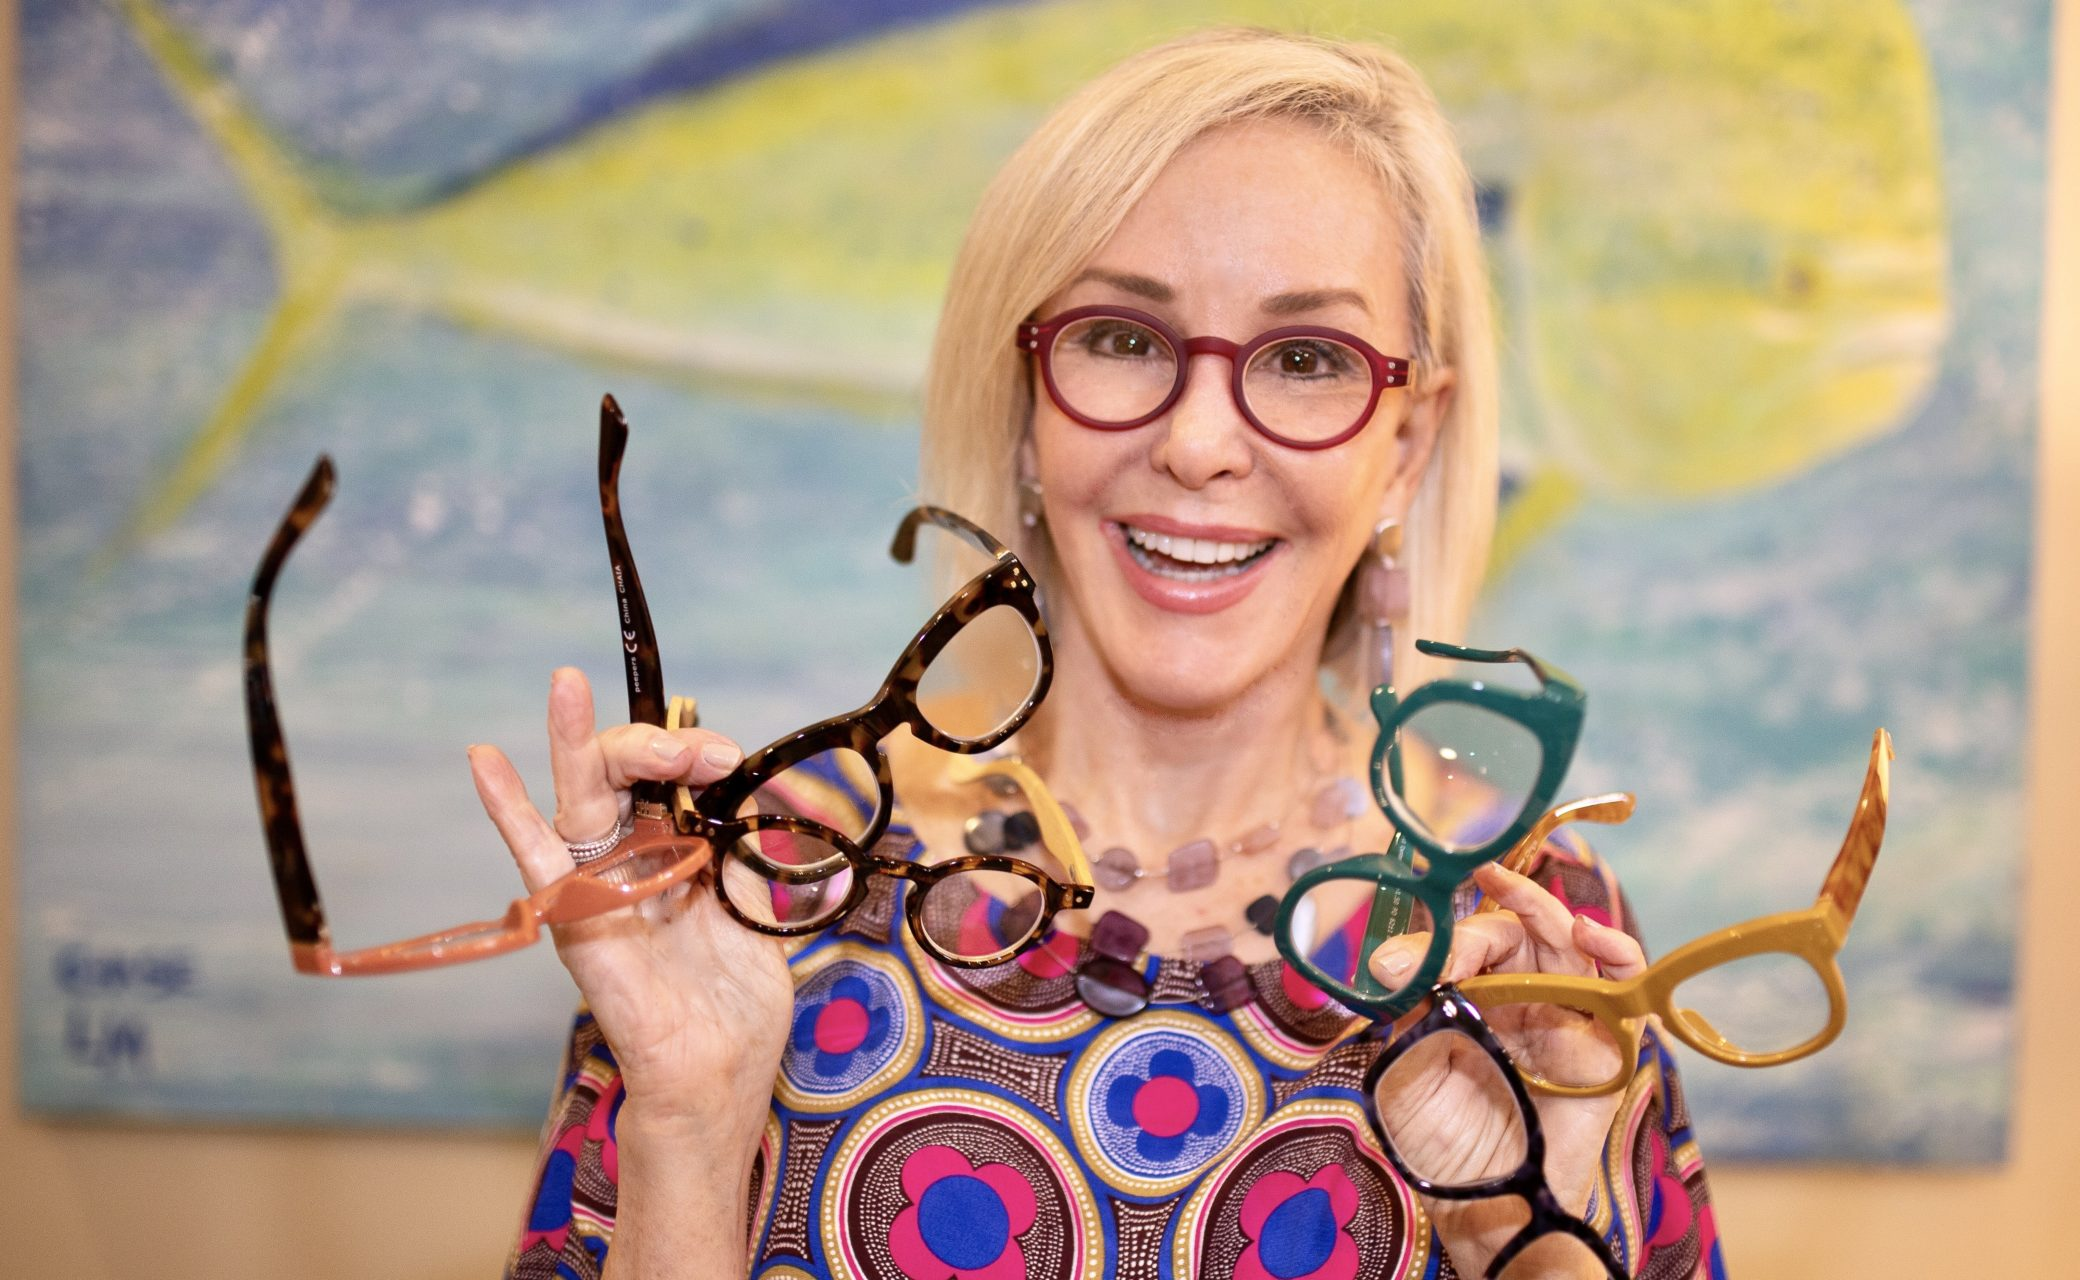 Sheree of the SheSheShow looking at camera wearing large framed eyewear by Peepers